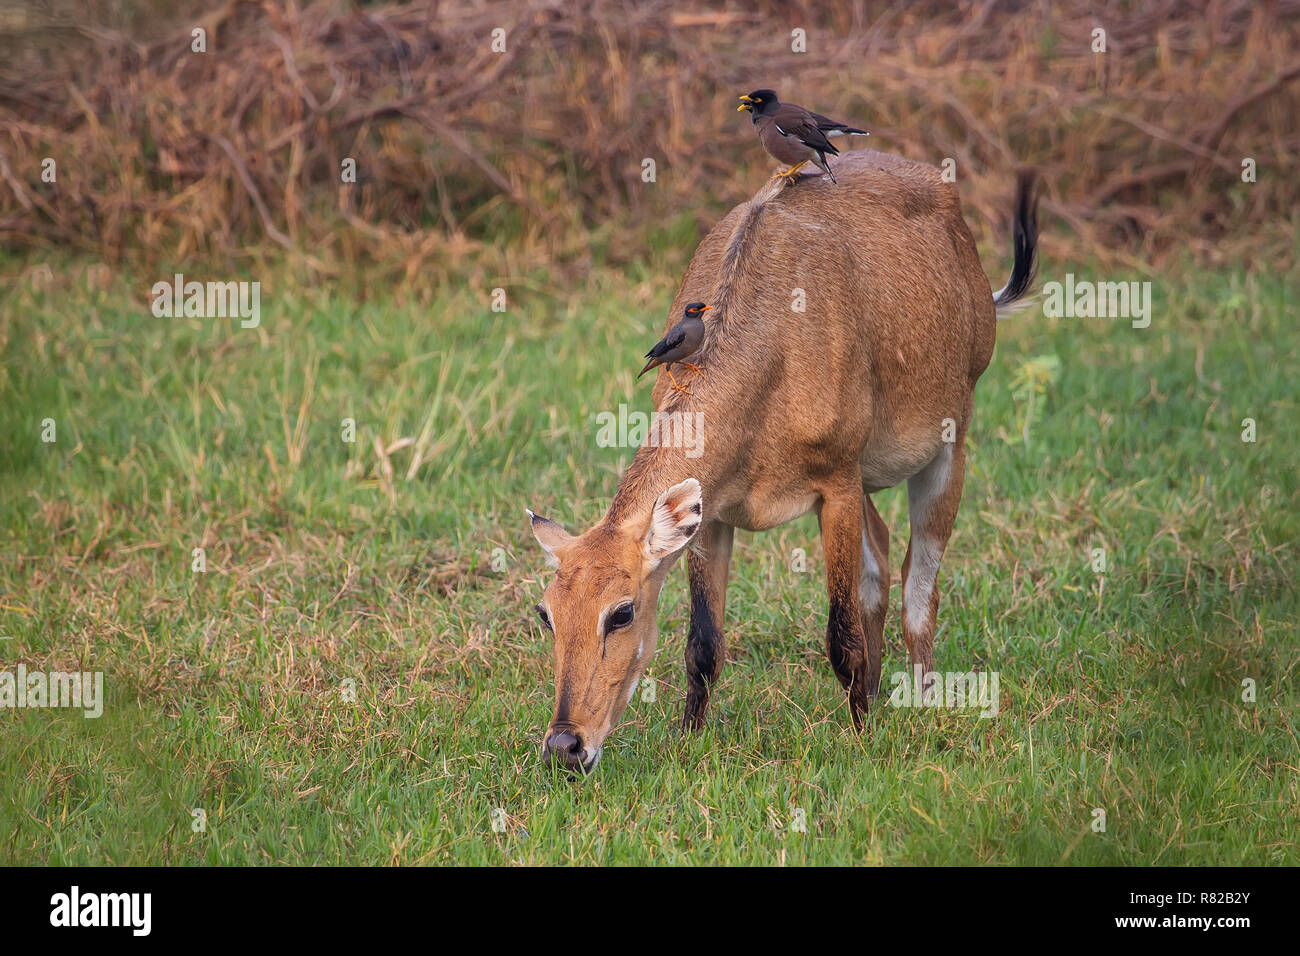 Female Nilgai with Brahminy mynas sitting on her in Keoladeo National Park, Bharatpur, India. Nilgai is the largest Asian antelope and is endemic to t Stock Photo